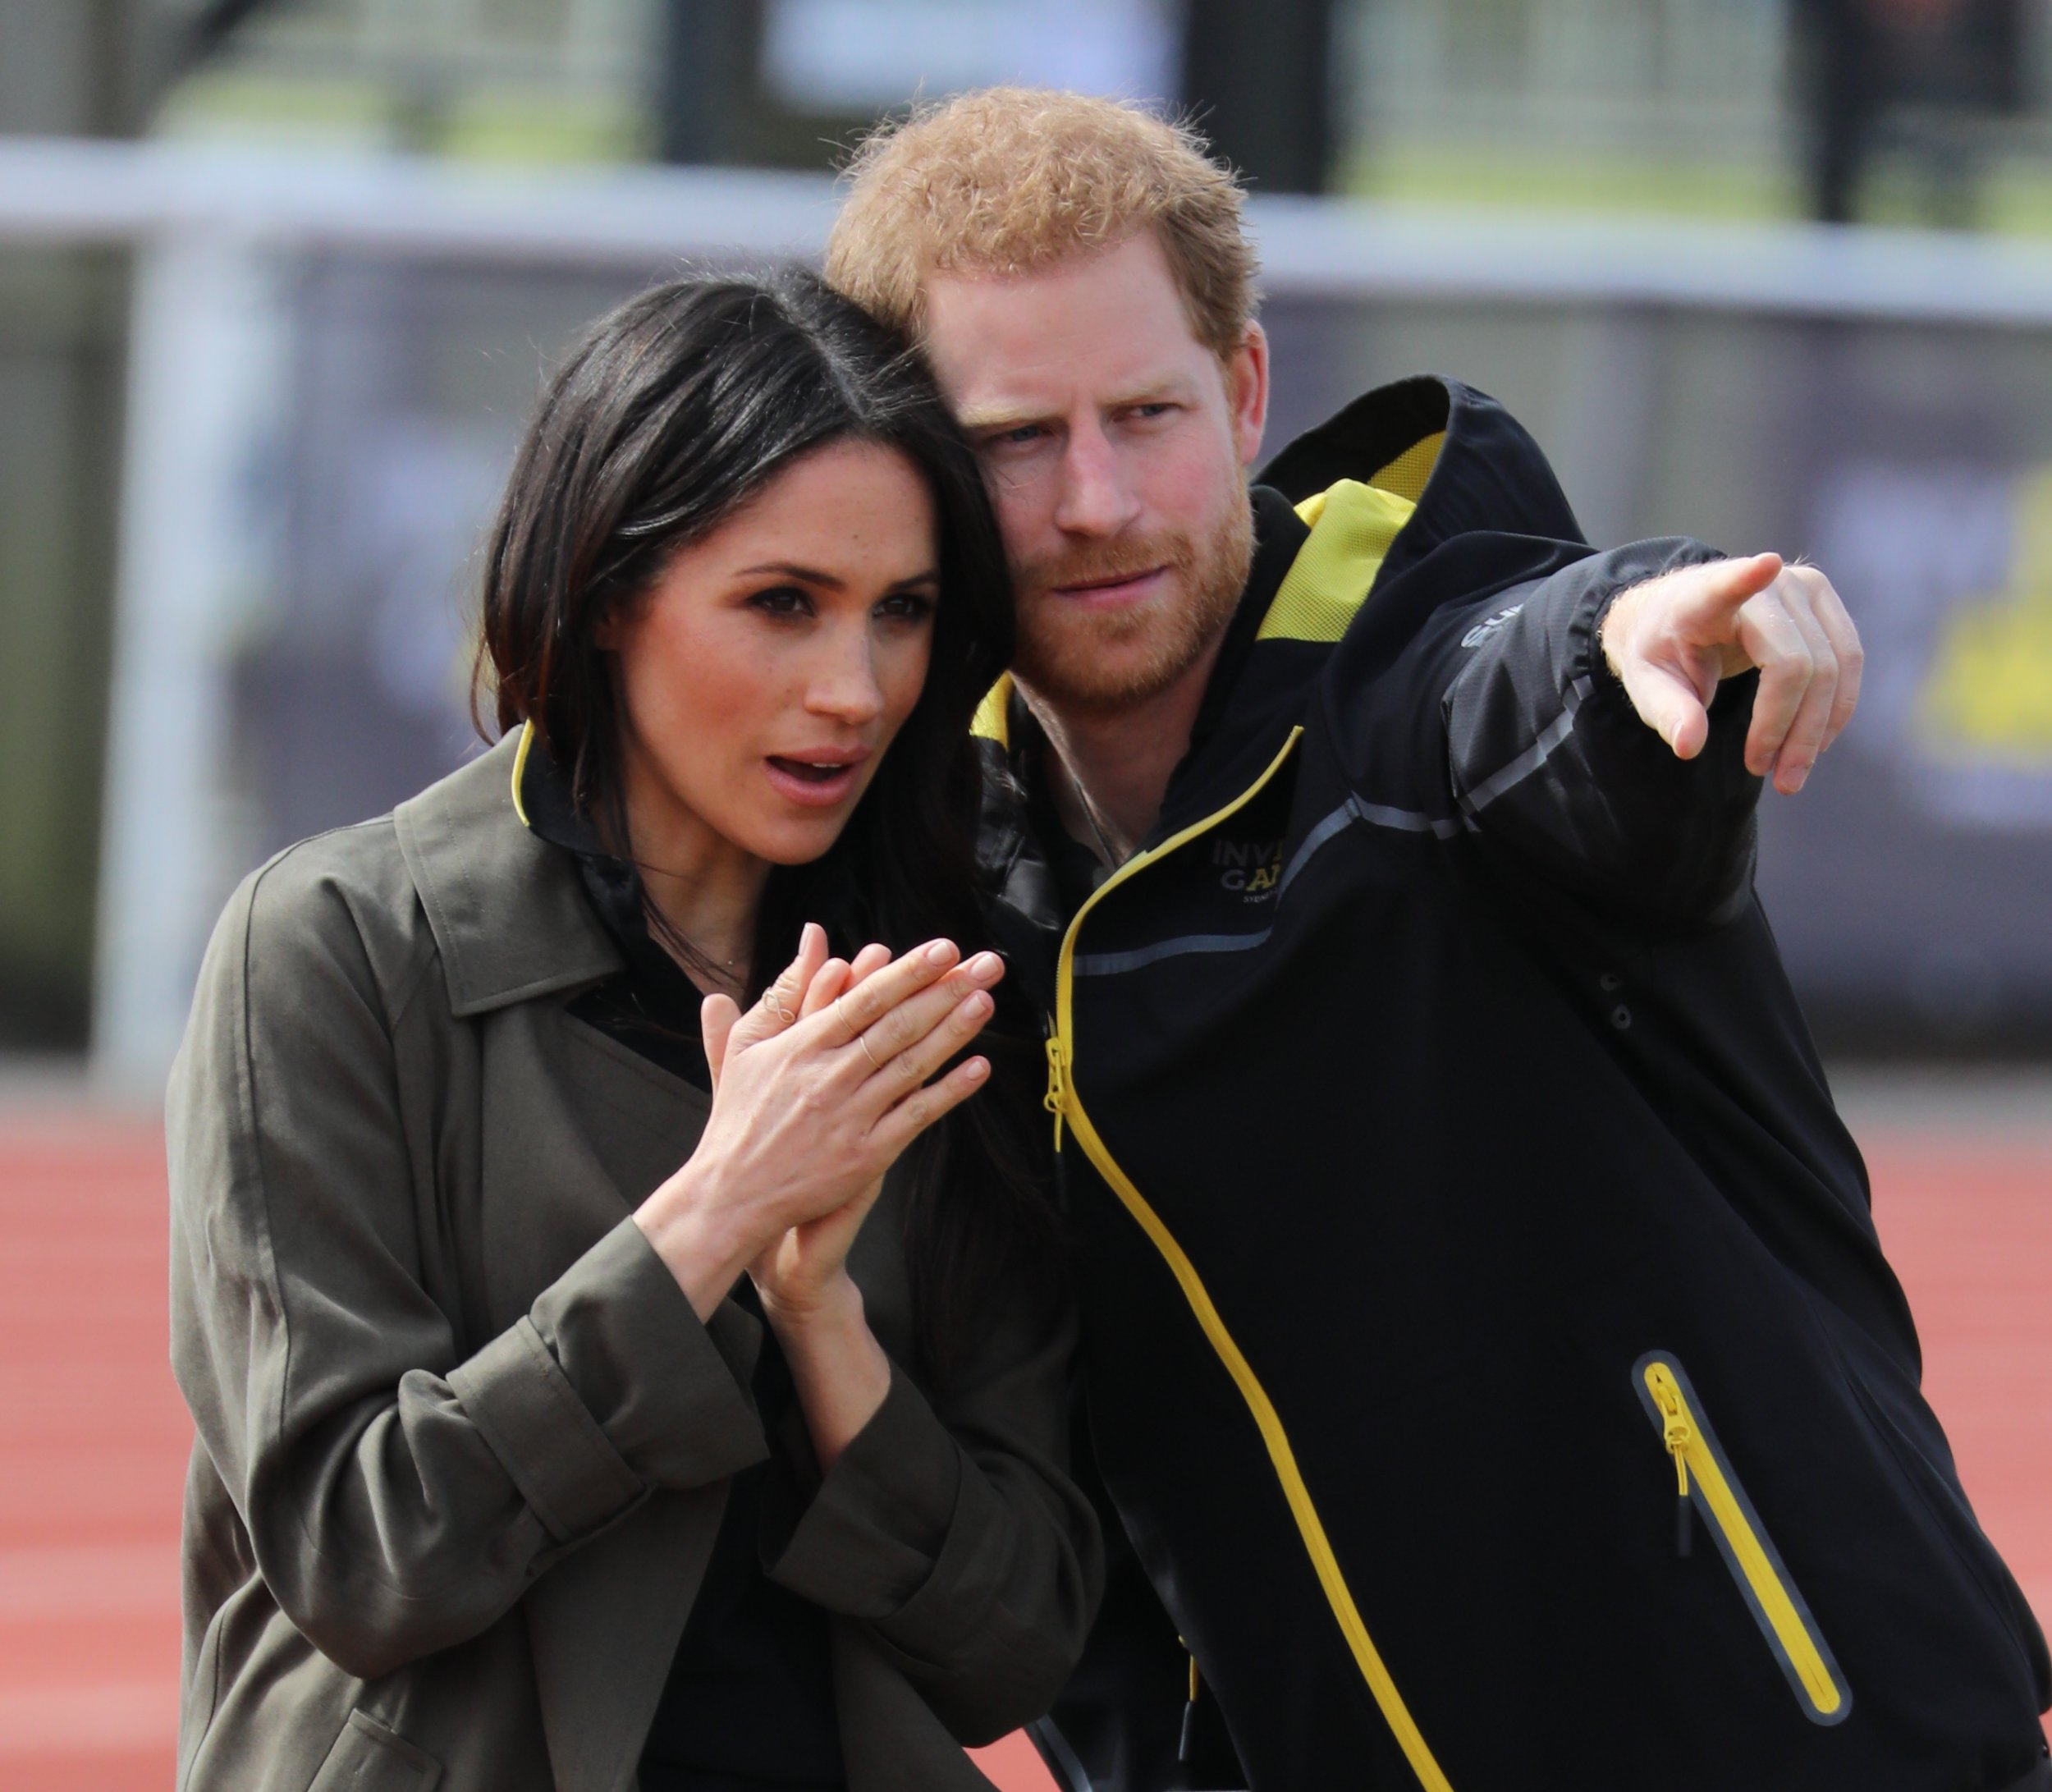 Prince Harry and Meghan Markle attend the UK team trials for the 2018 Invictus games in Sydney this October at University of Bath Sports Training Village. Featuring: Prince Harry, Meghan Markle Where: Bath, United Kingdom When: 06 Apr 2018 Credit: David Sims/WENN.com